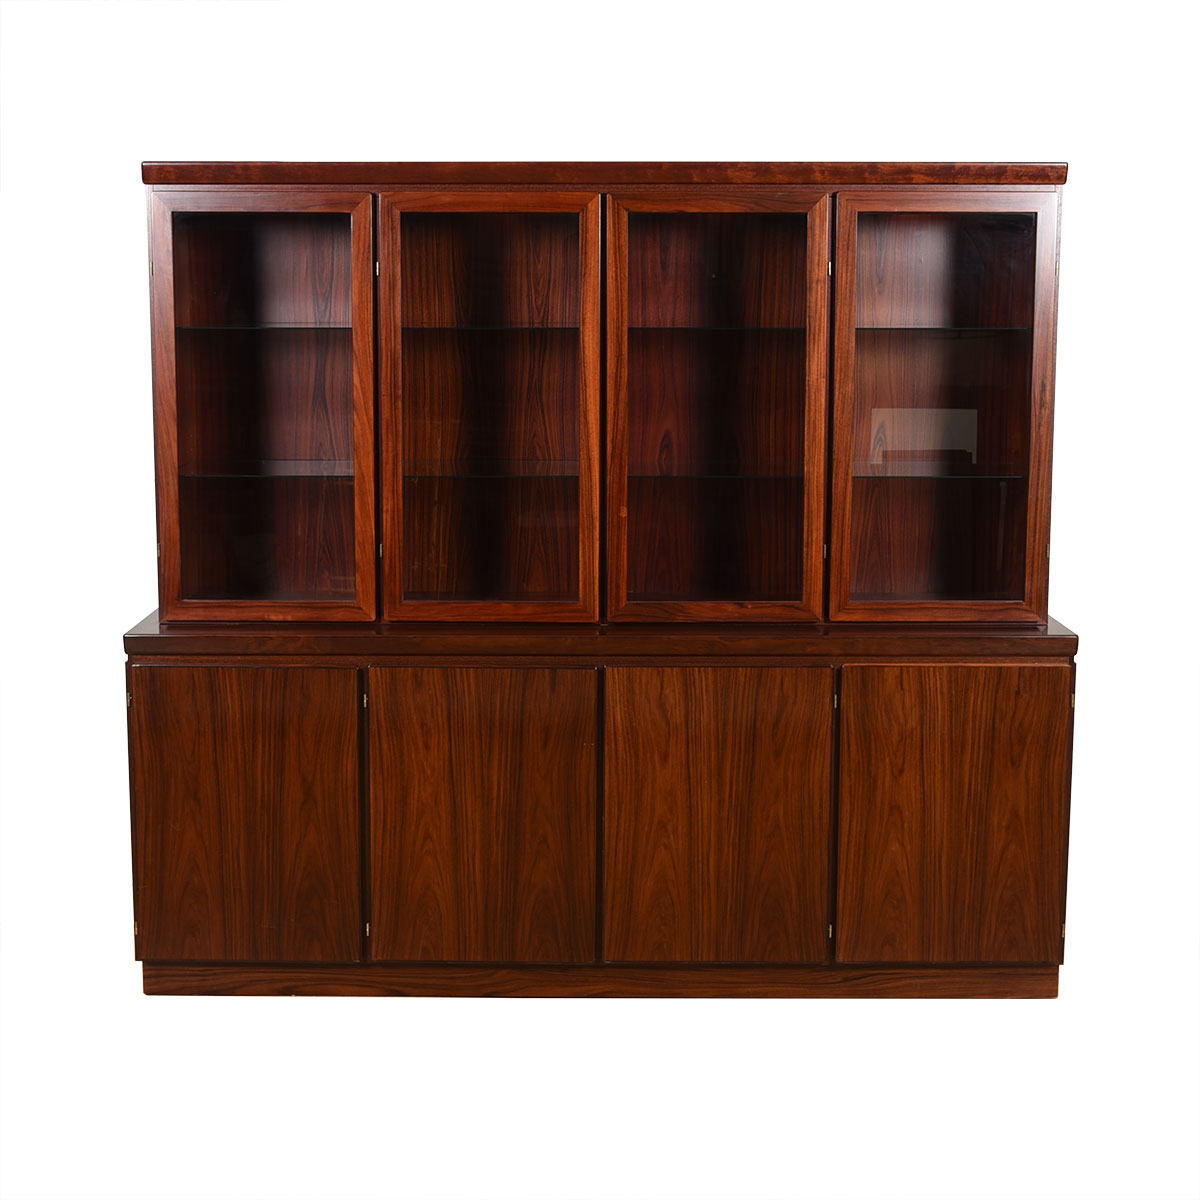 Lighted 2 Piece Danish Rosewood 4-Bay Display Cabinet / Storage